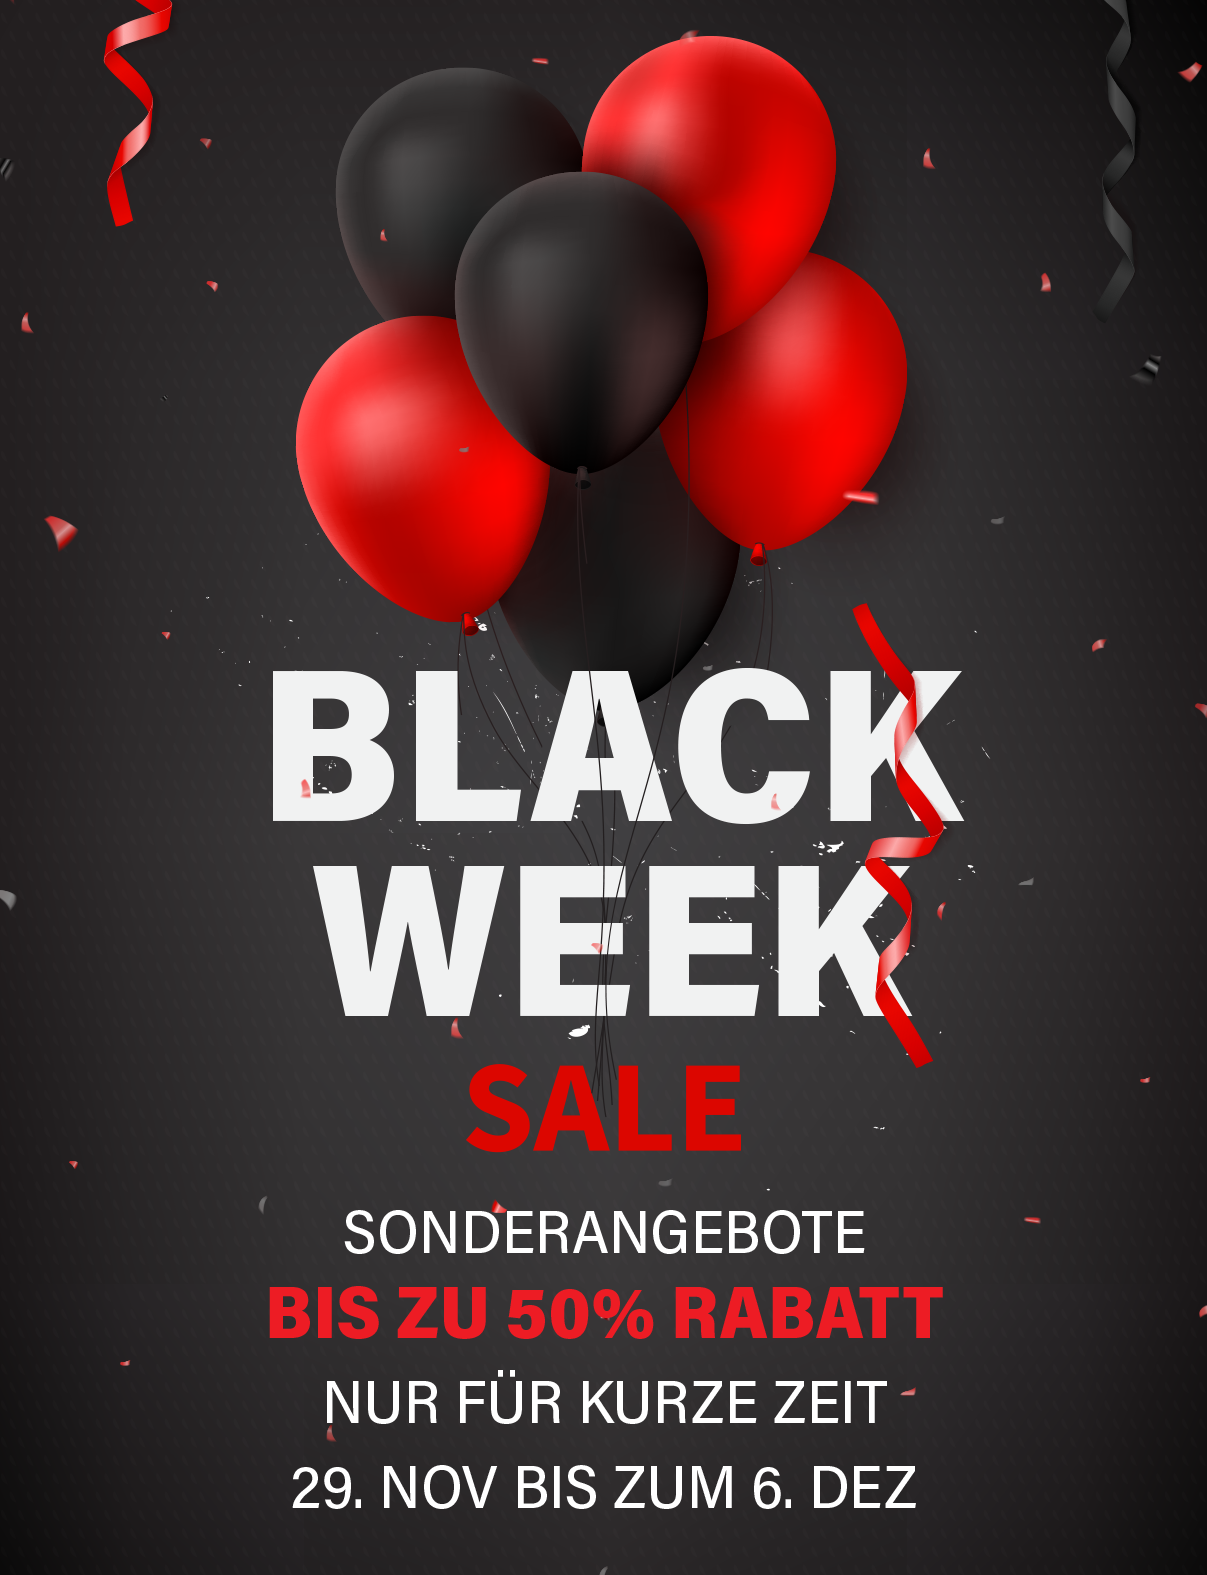 black-week-luftballonwelt